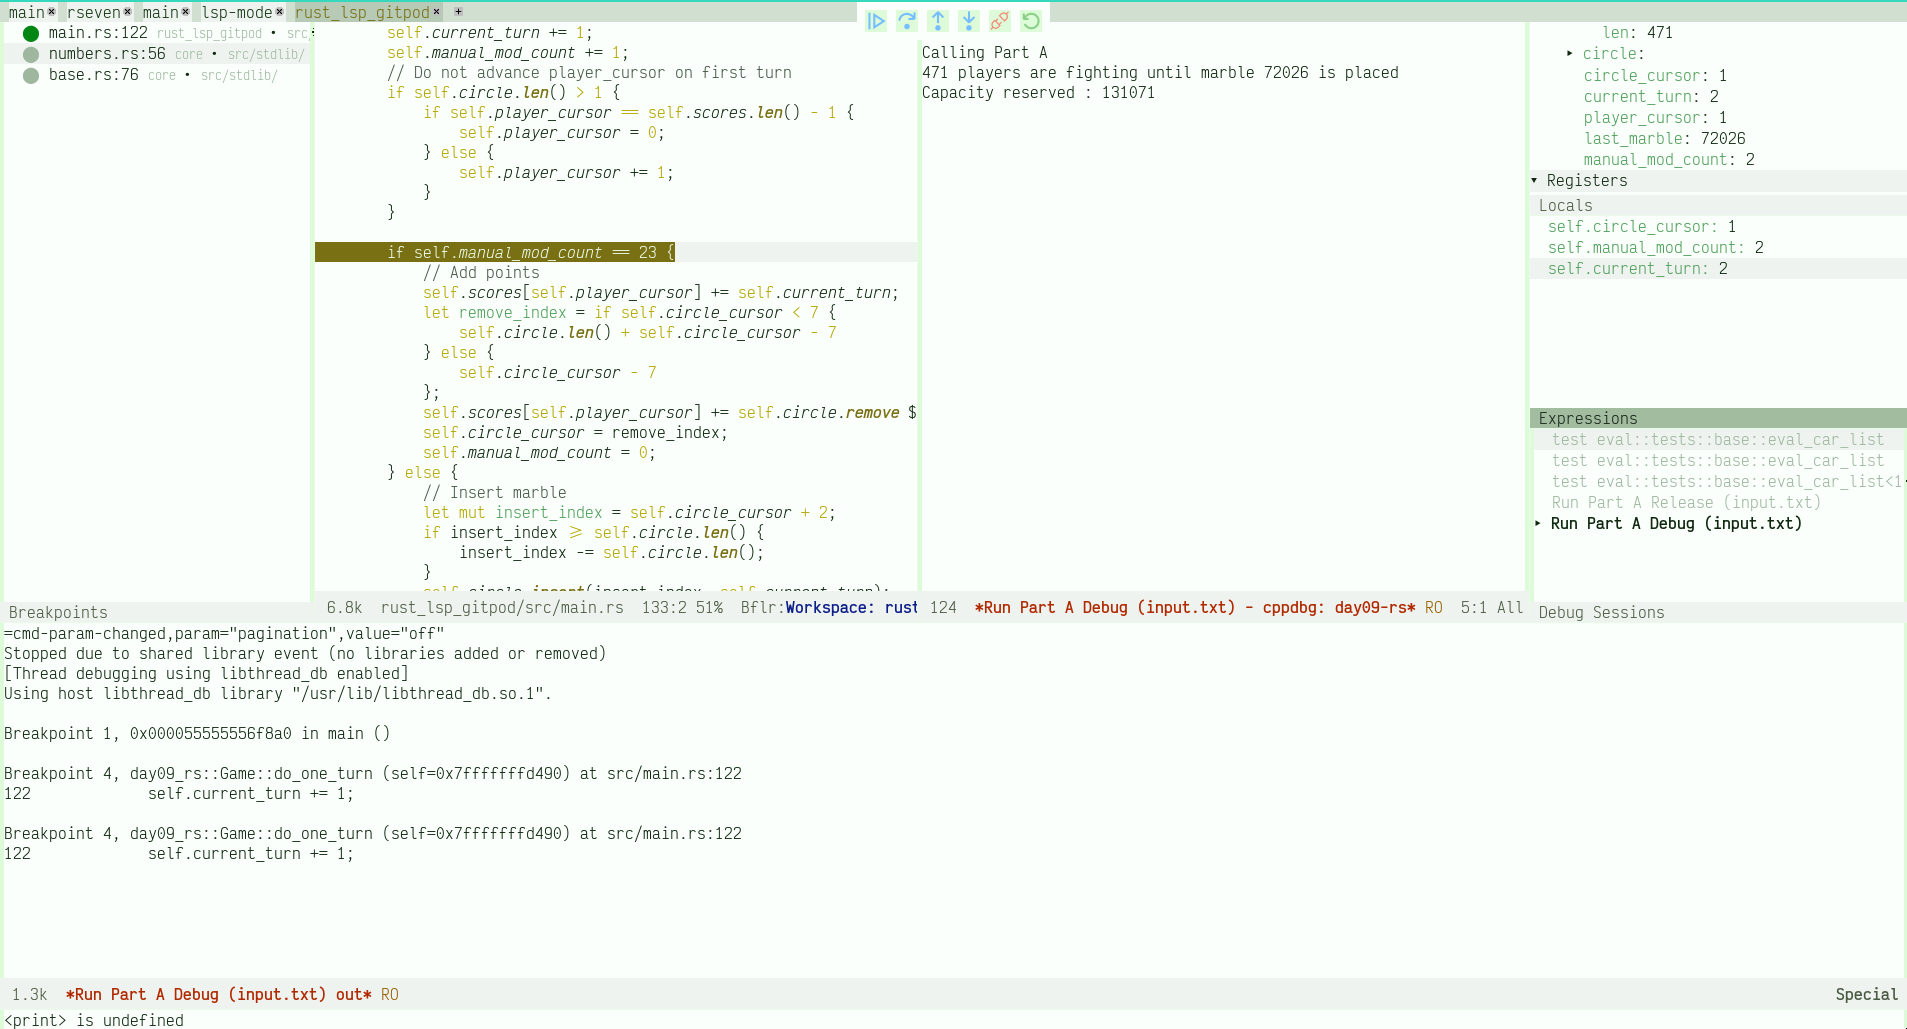 Figure 1: Debugging session for Rust using dap-mode (with dap-cpptools)